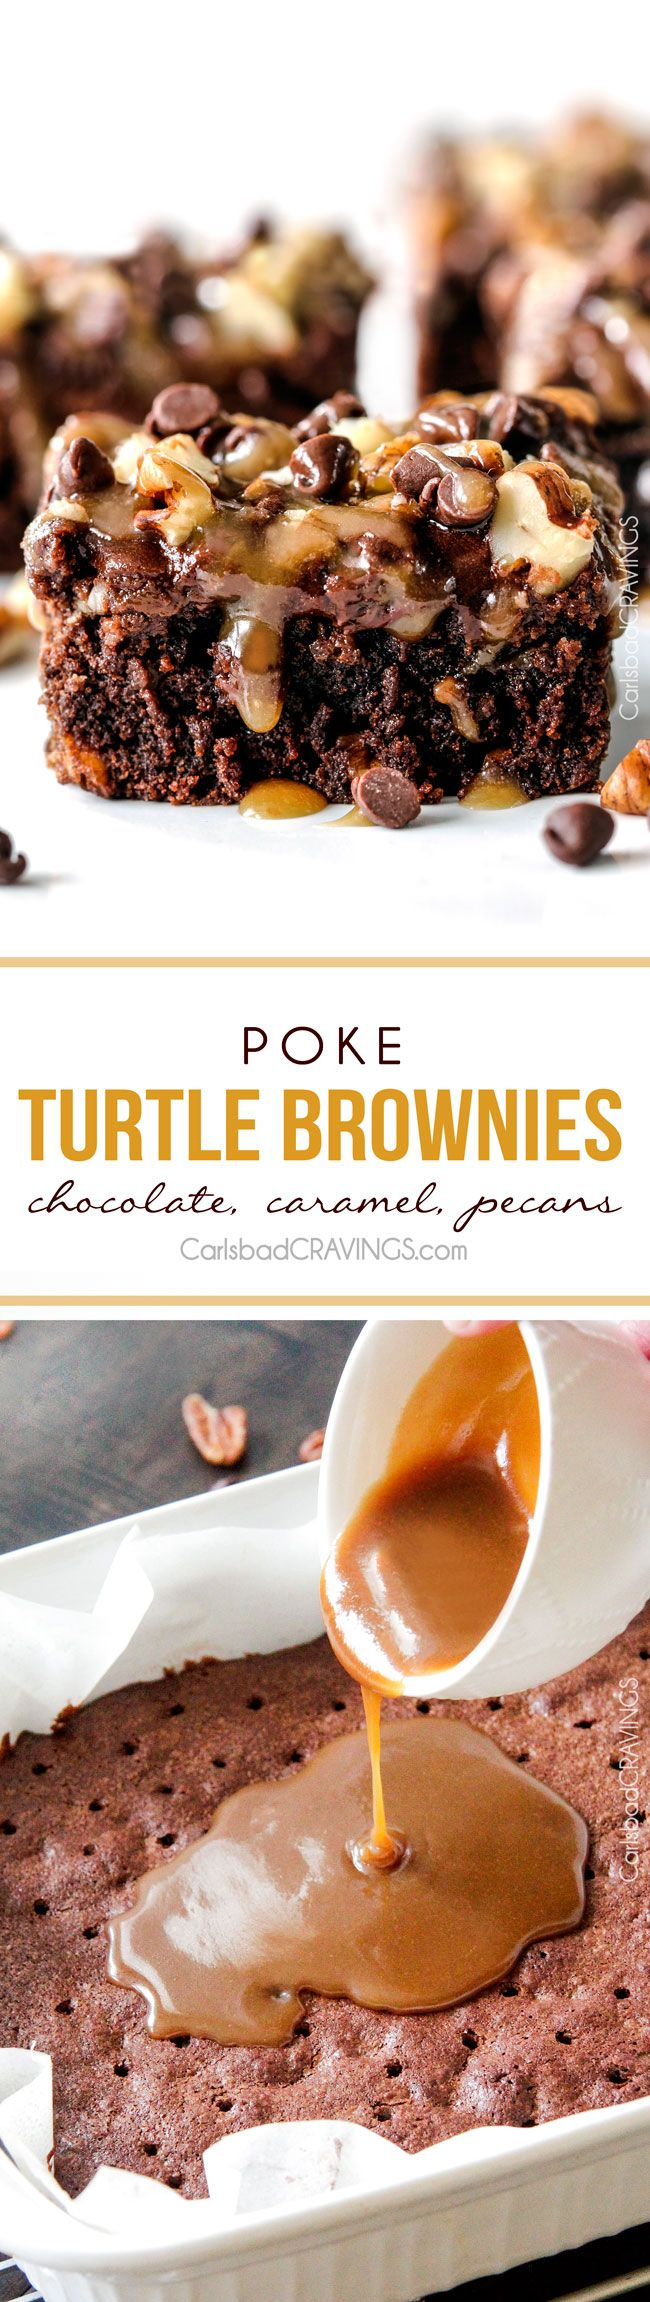 Crazy moist Poke Turtle Brownies seeping with pockets of caramel, infused with pecans and chocolate chips, smothered in the BEST chocolate frosting and topped with more caramel. the best brownies EVER! #turtlebrownies